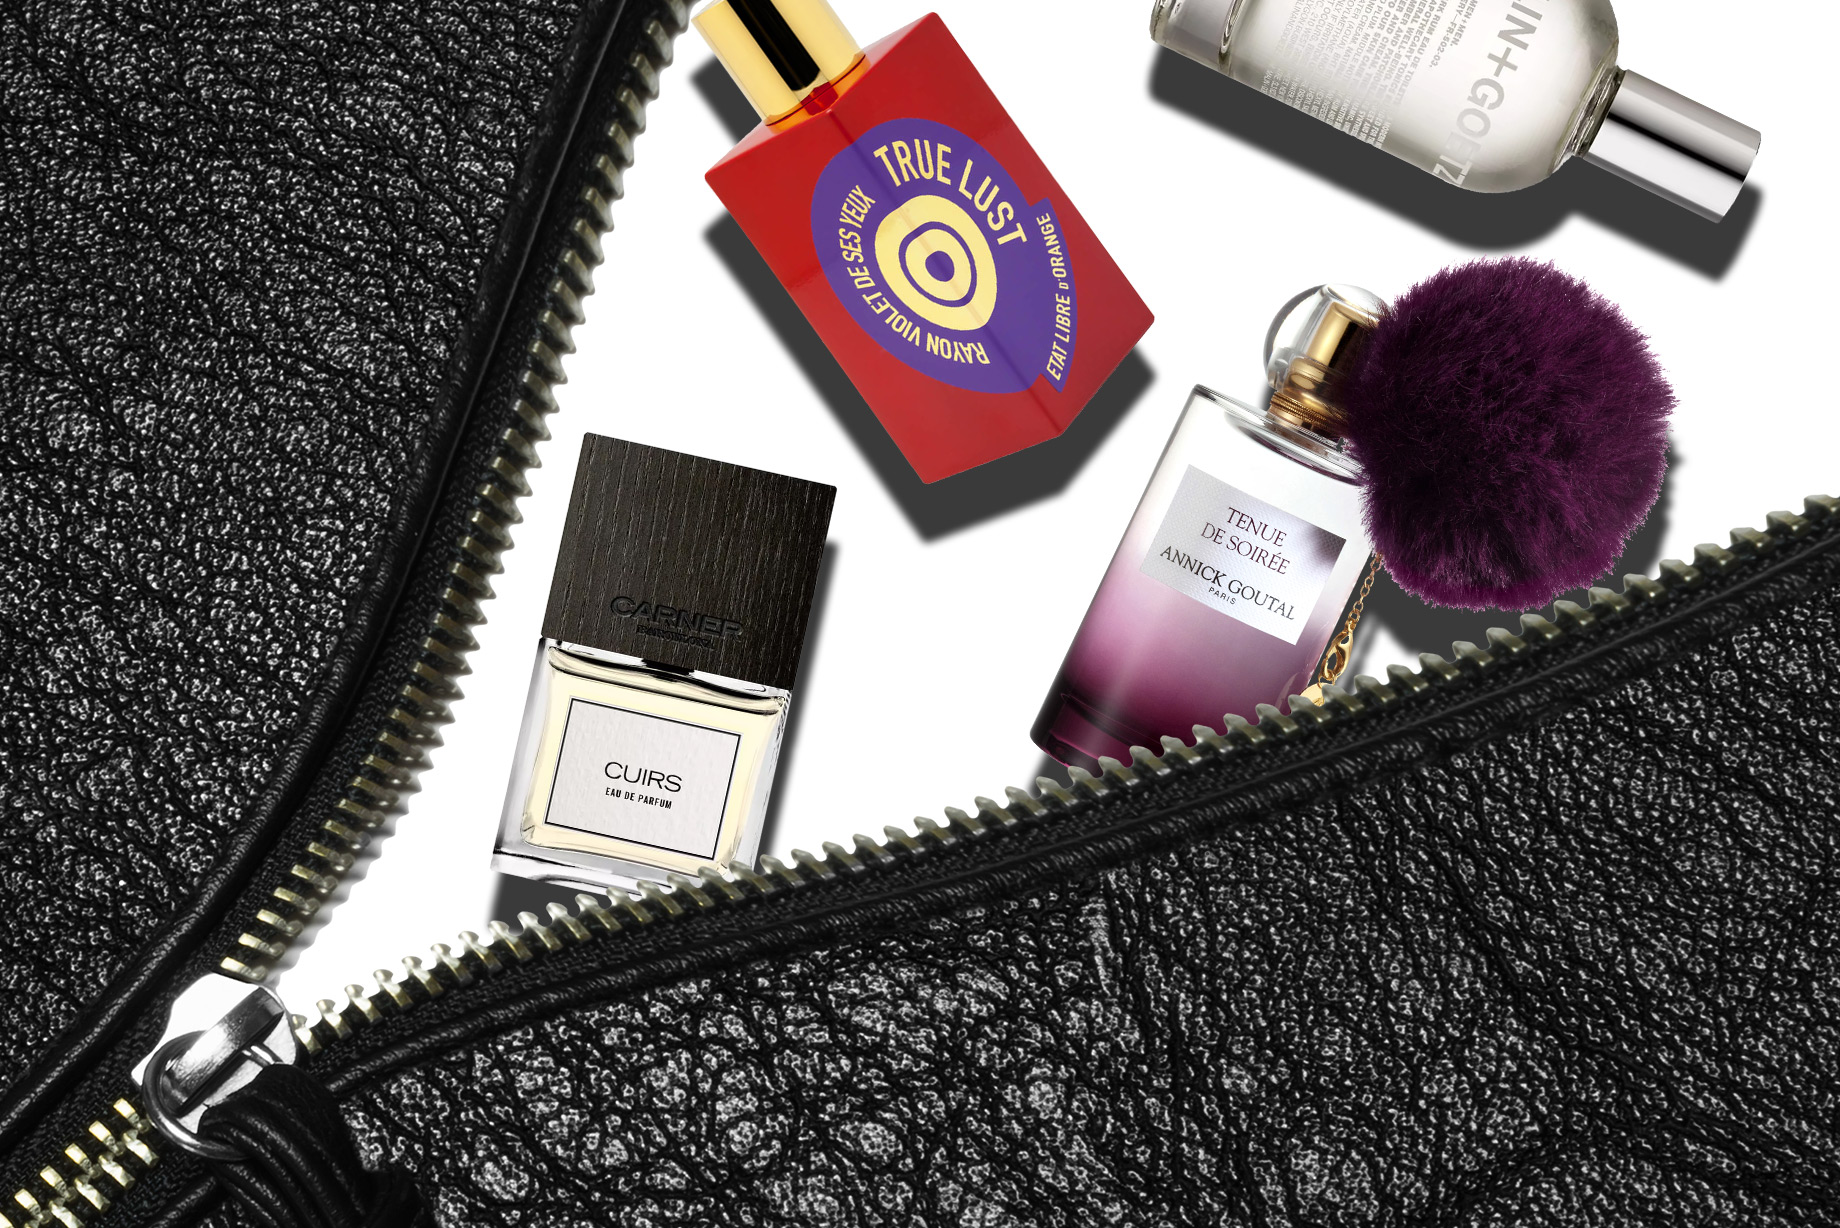 Leather and Spring: Unexpected and Exciting Fragrance Partnership